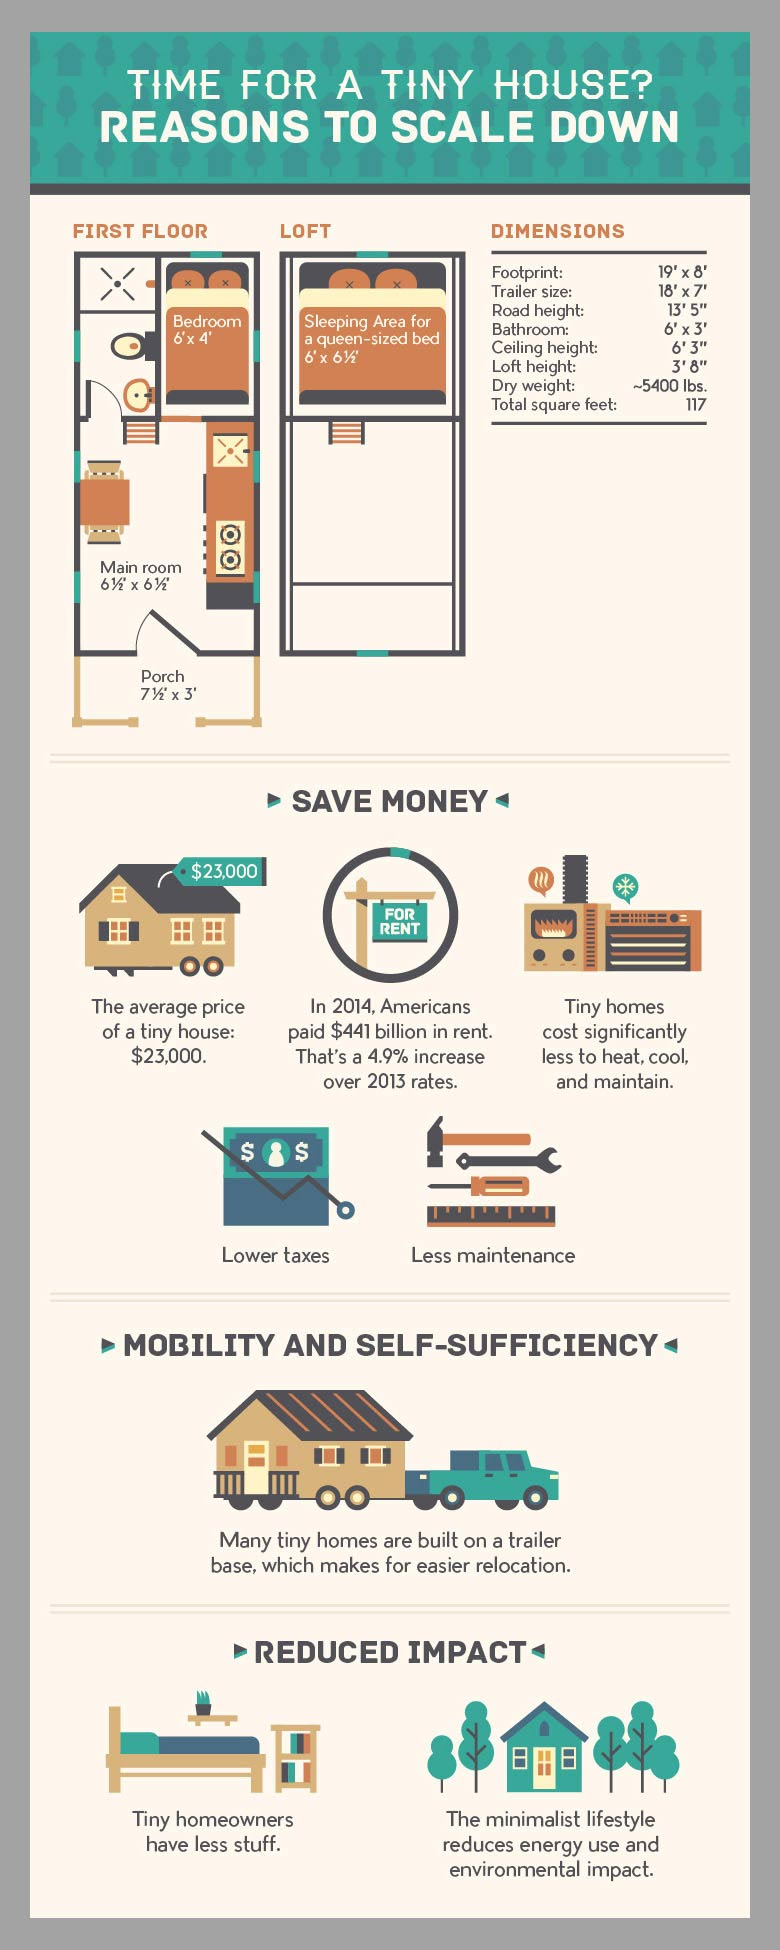 tiny house advantages - a few reasons to scale down and consider building your own tiny house